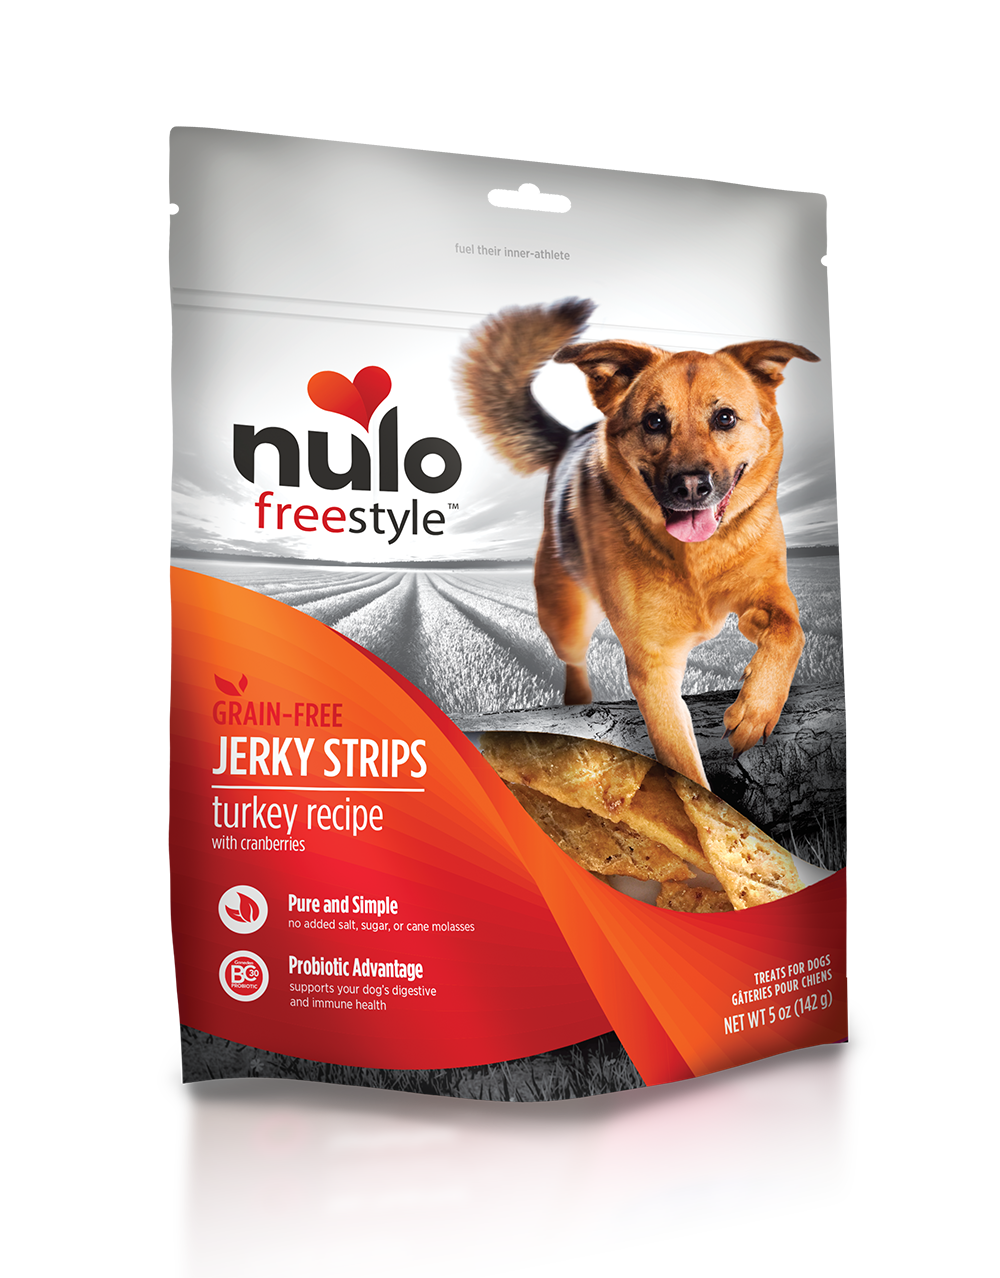 Nulo freestyle jerkytreats turkey